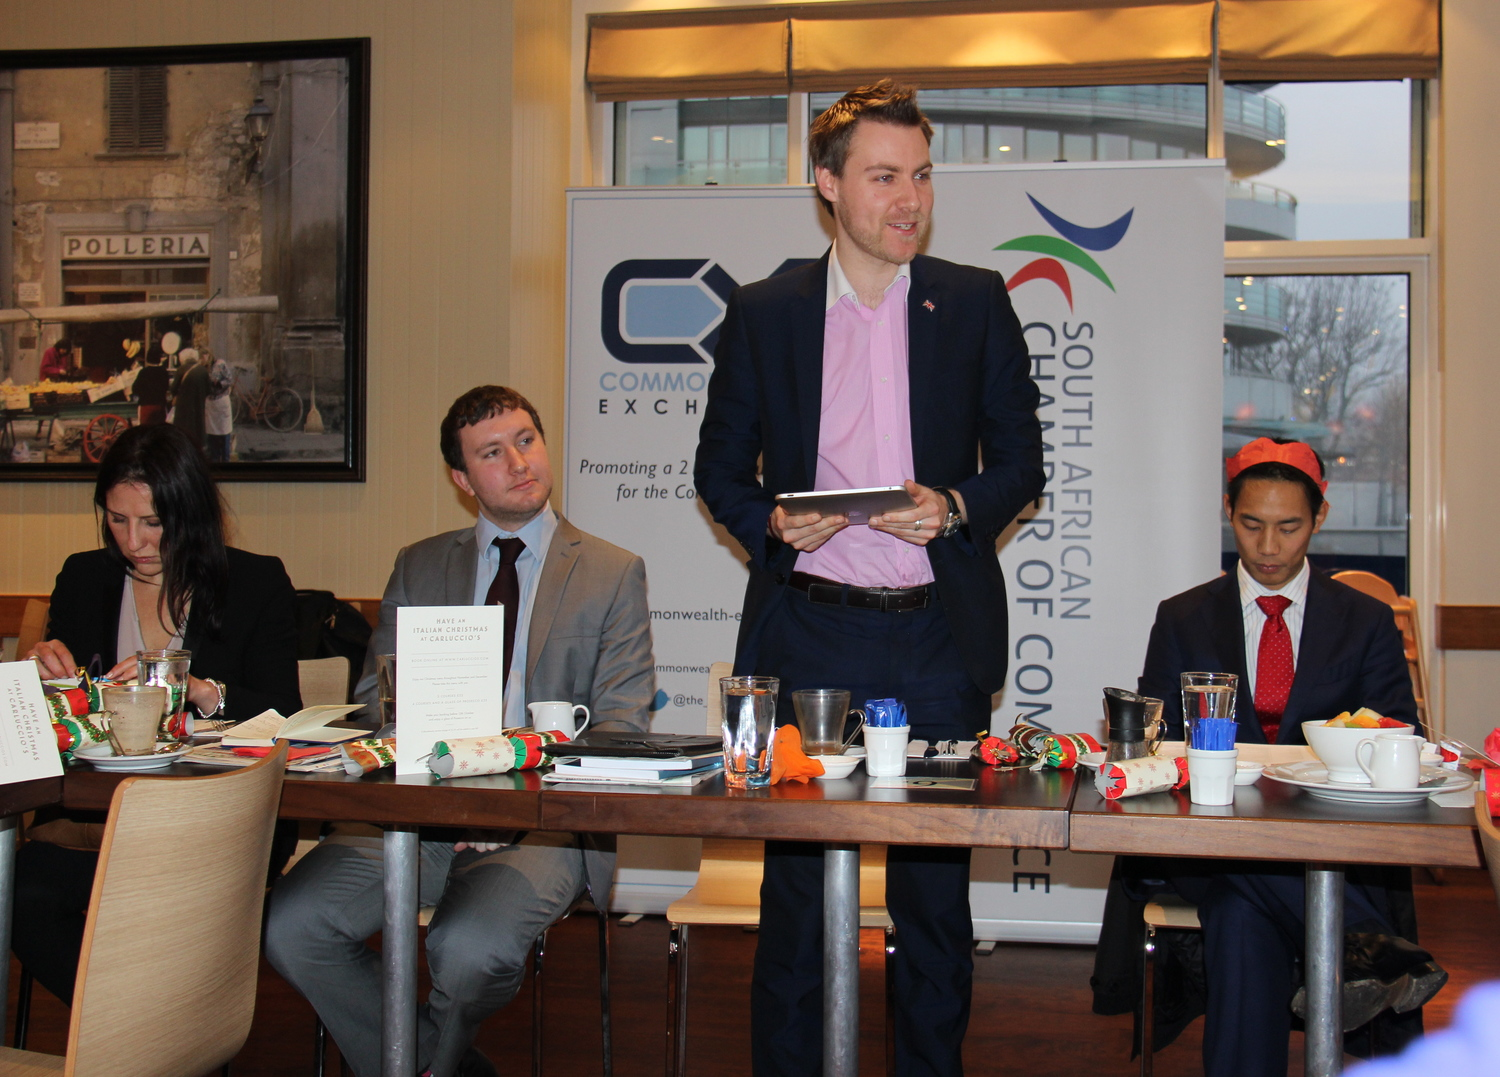 CX speaking at the South African Chambers - Dec 2013